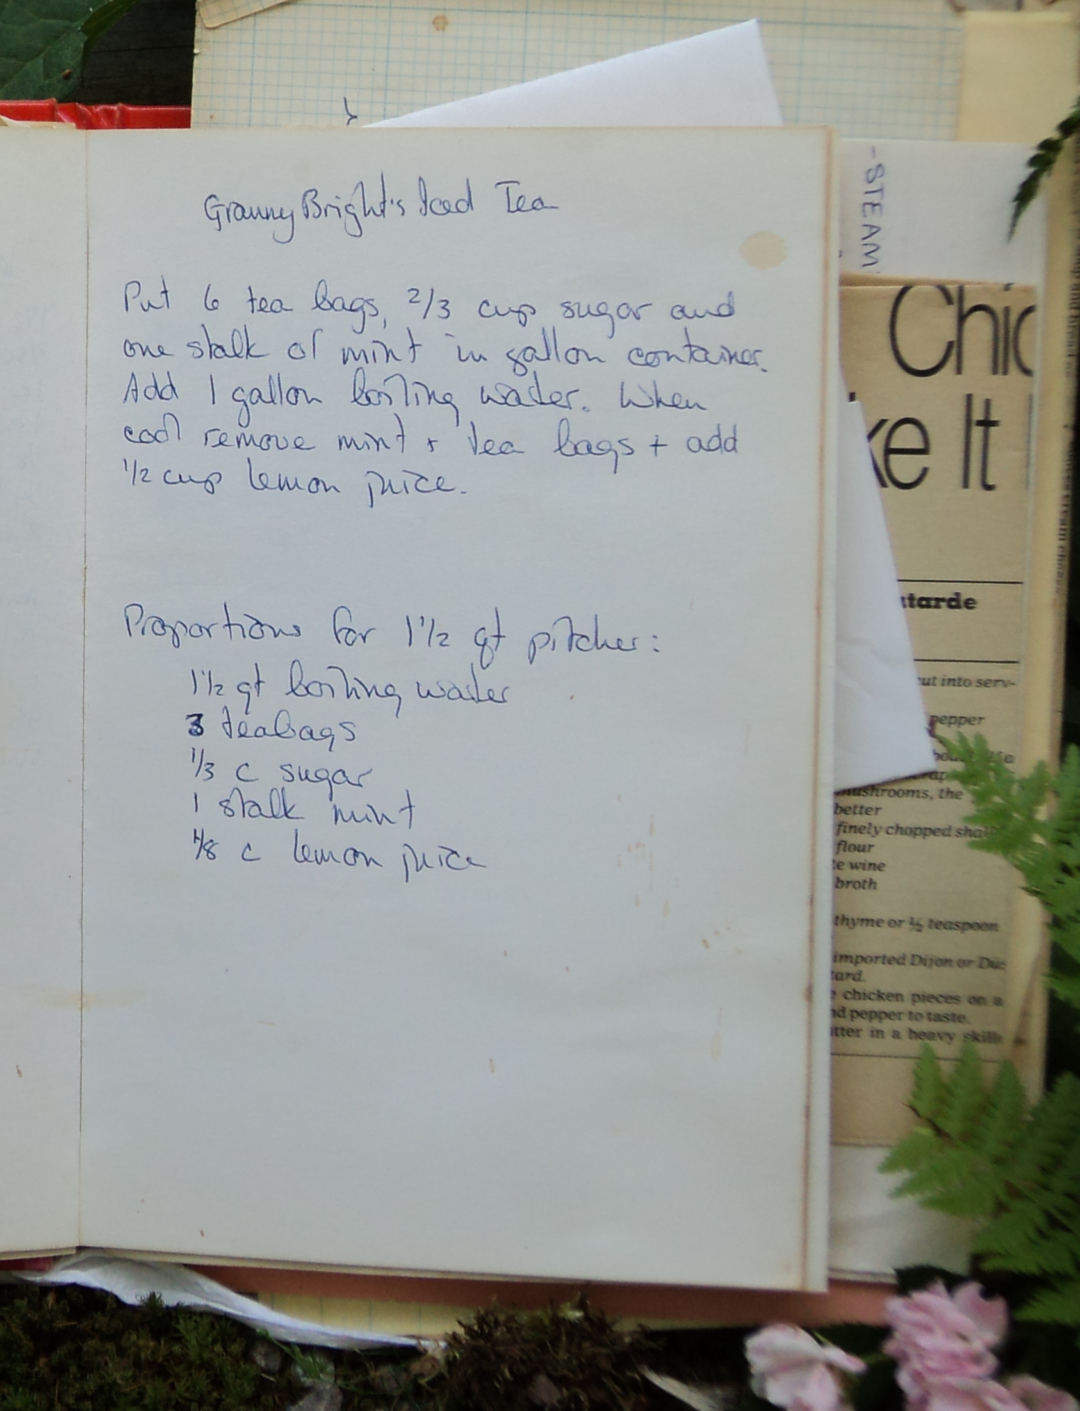 Recipe for Granny Bright's Iced Tea